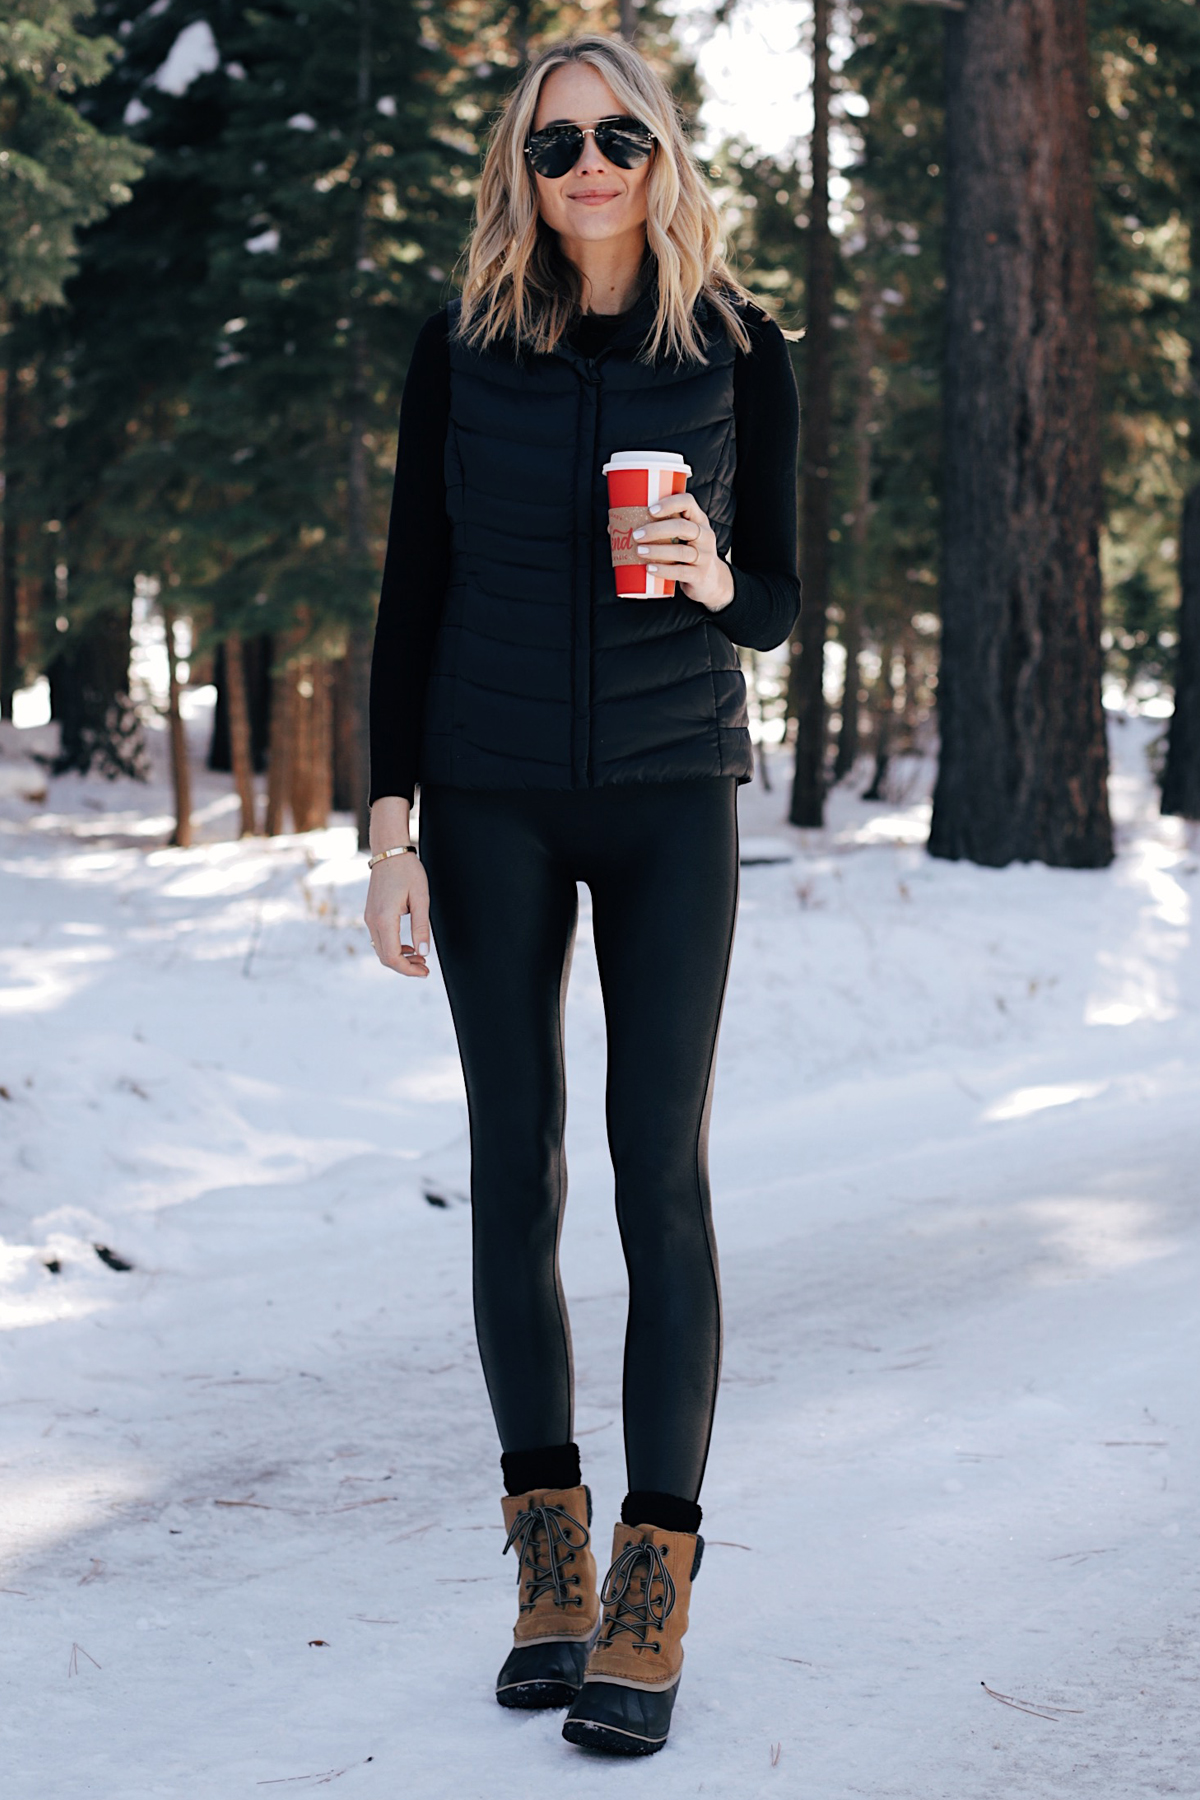 Fashion-Jackson-Wearing-Black-Puffer-Vest-Black-Spanx-Faux-Leather-Leggings-Sorel-Snow-Boots-Winter-Outfi